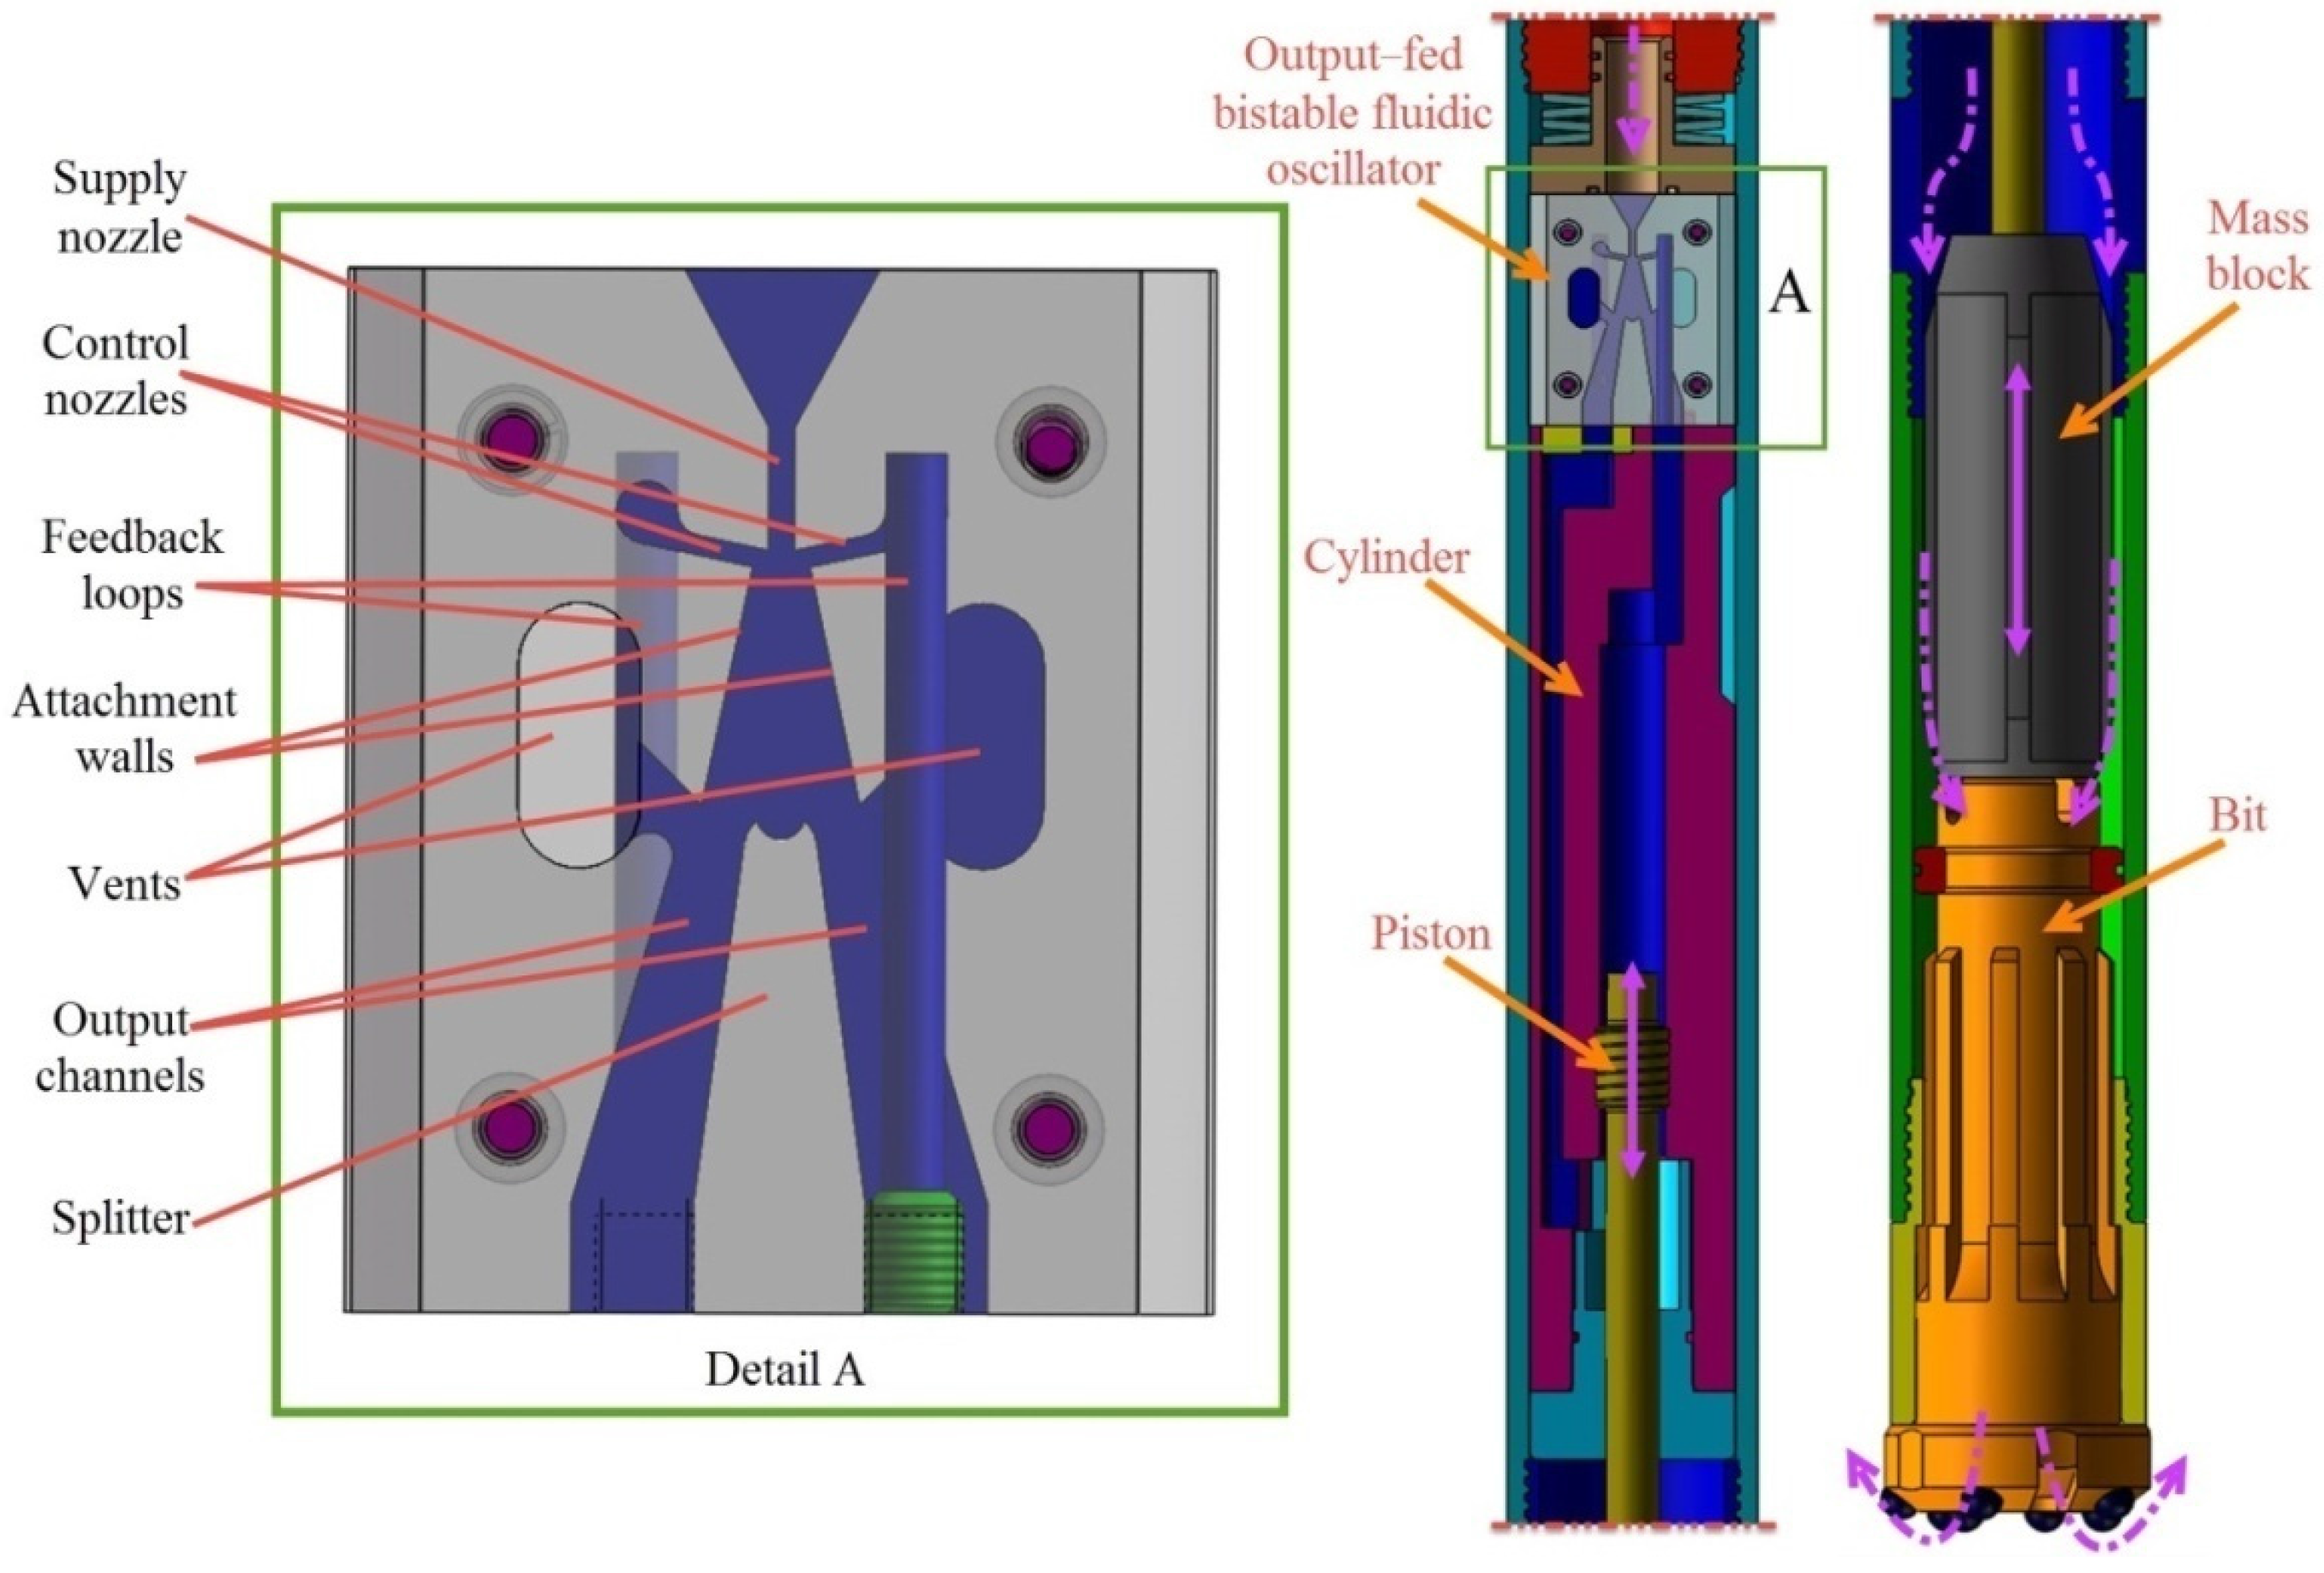 Applied Sciences Free Full Text Performance Study Of A Fluidic Oscillatory Circuit For An Ultrasonic Cleaning Device With Feedback Applsci 06 00305 G002